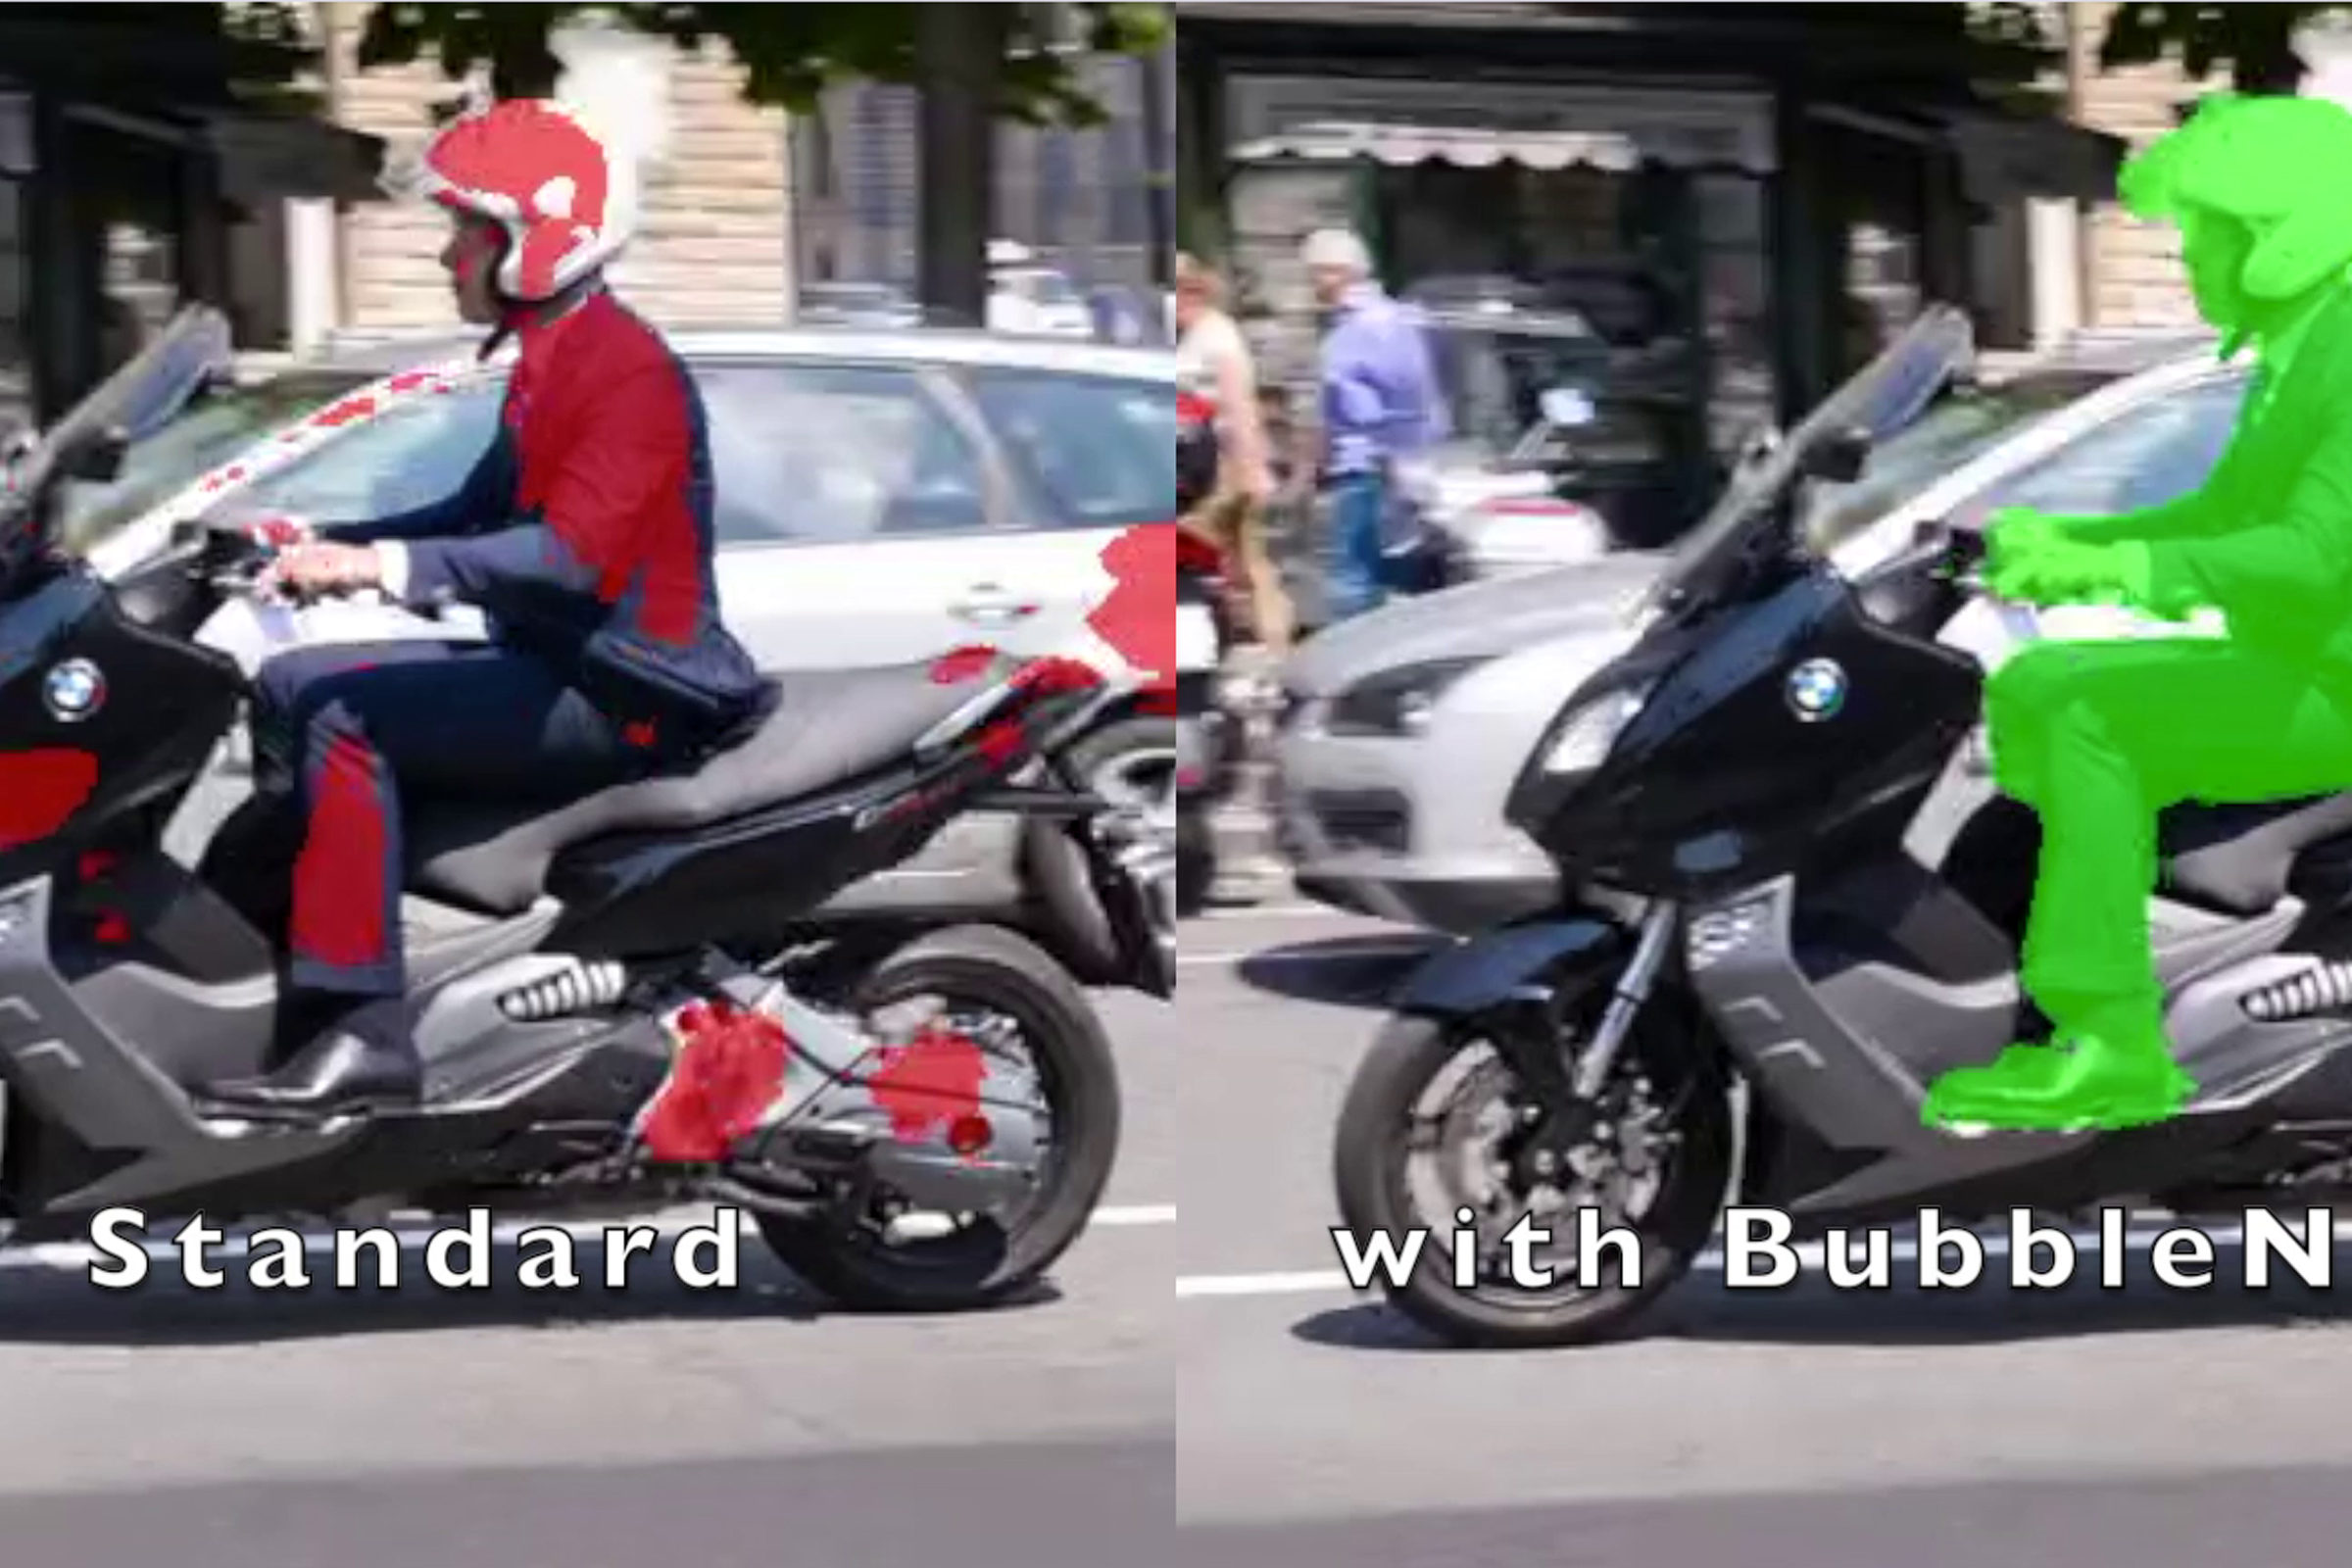 Two images side by side of a motorcycle rider. On the right side version the rider is highlighted in green.